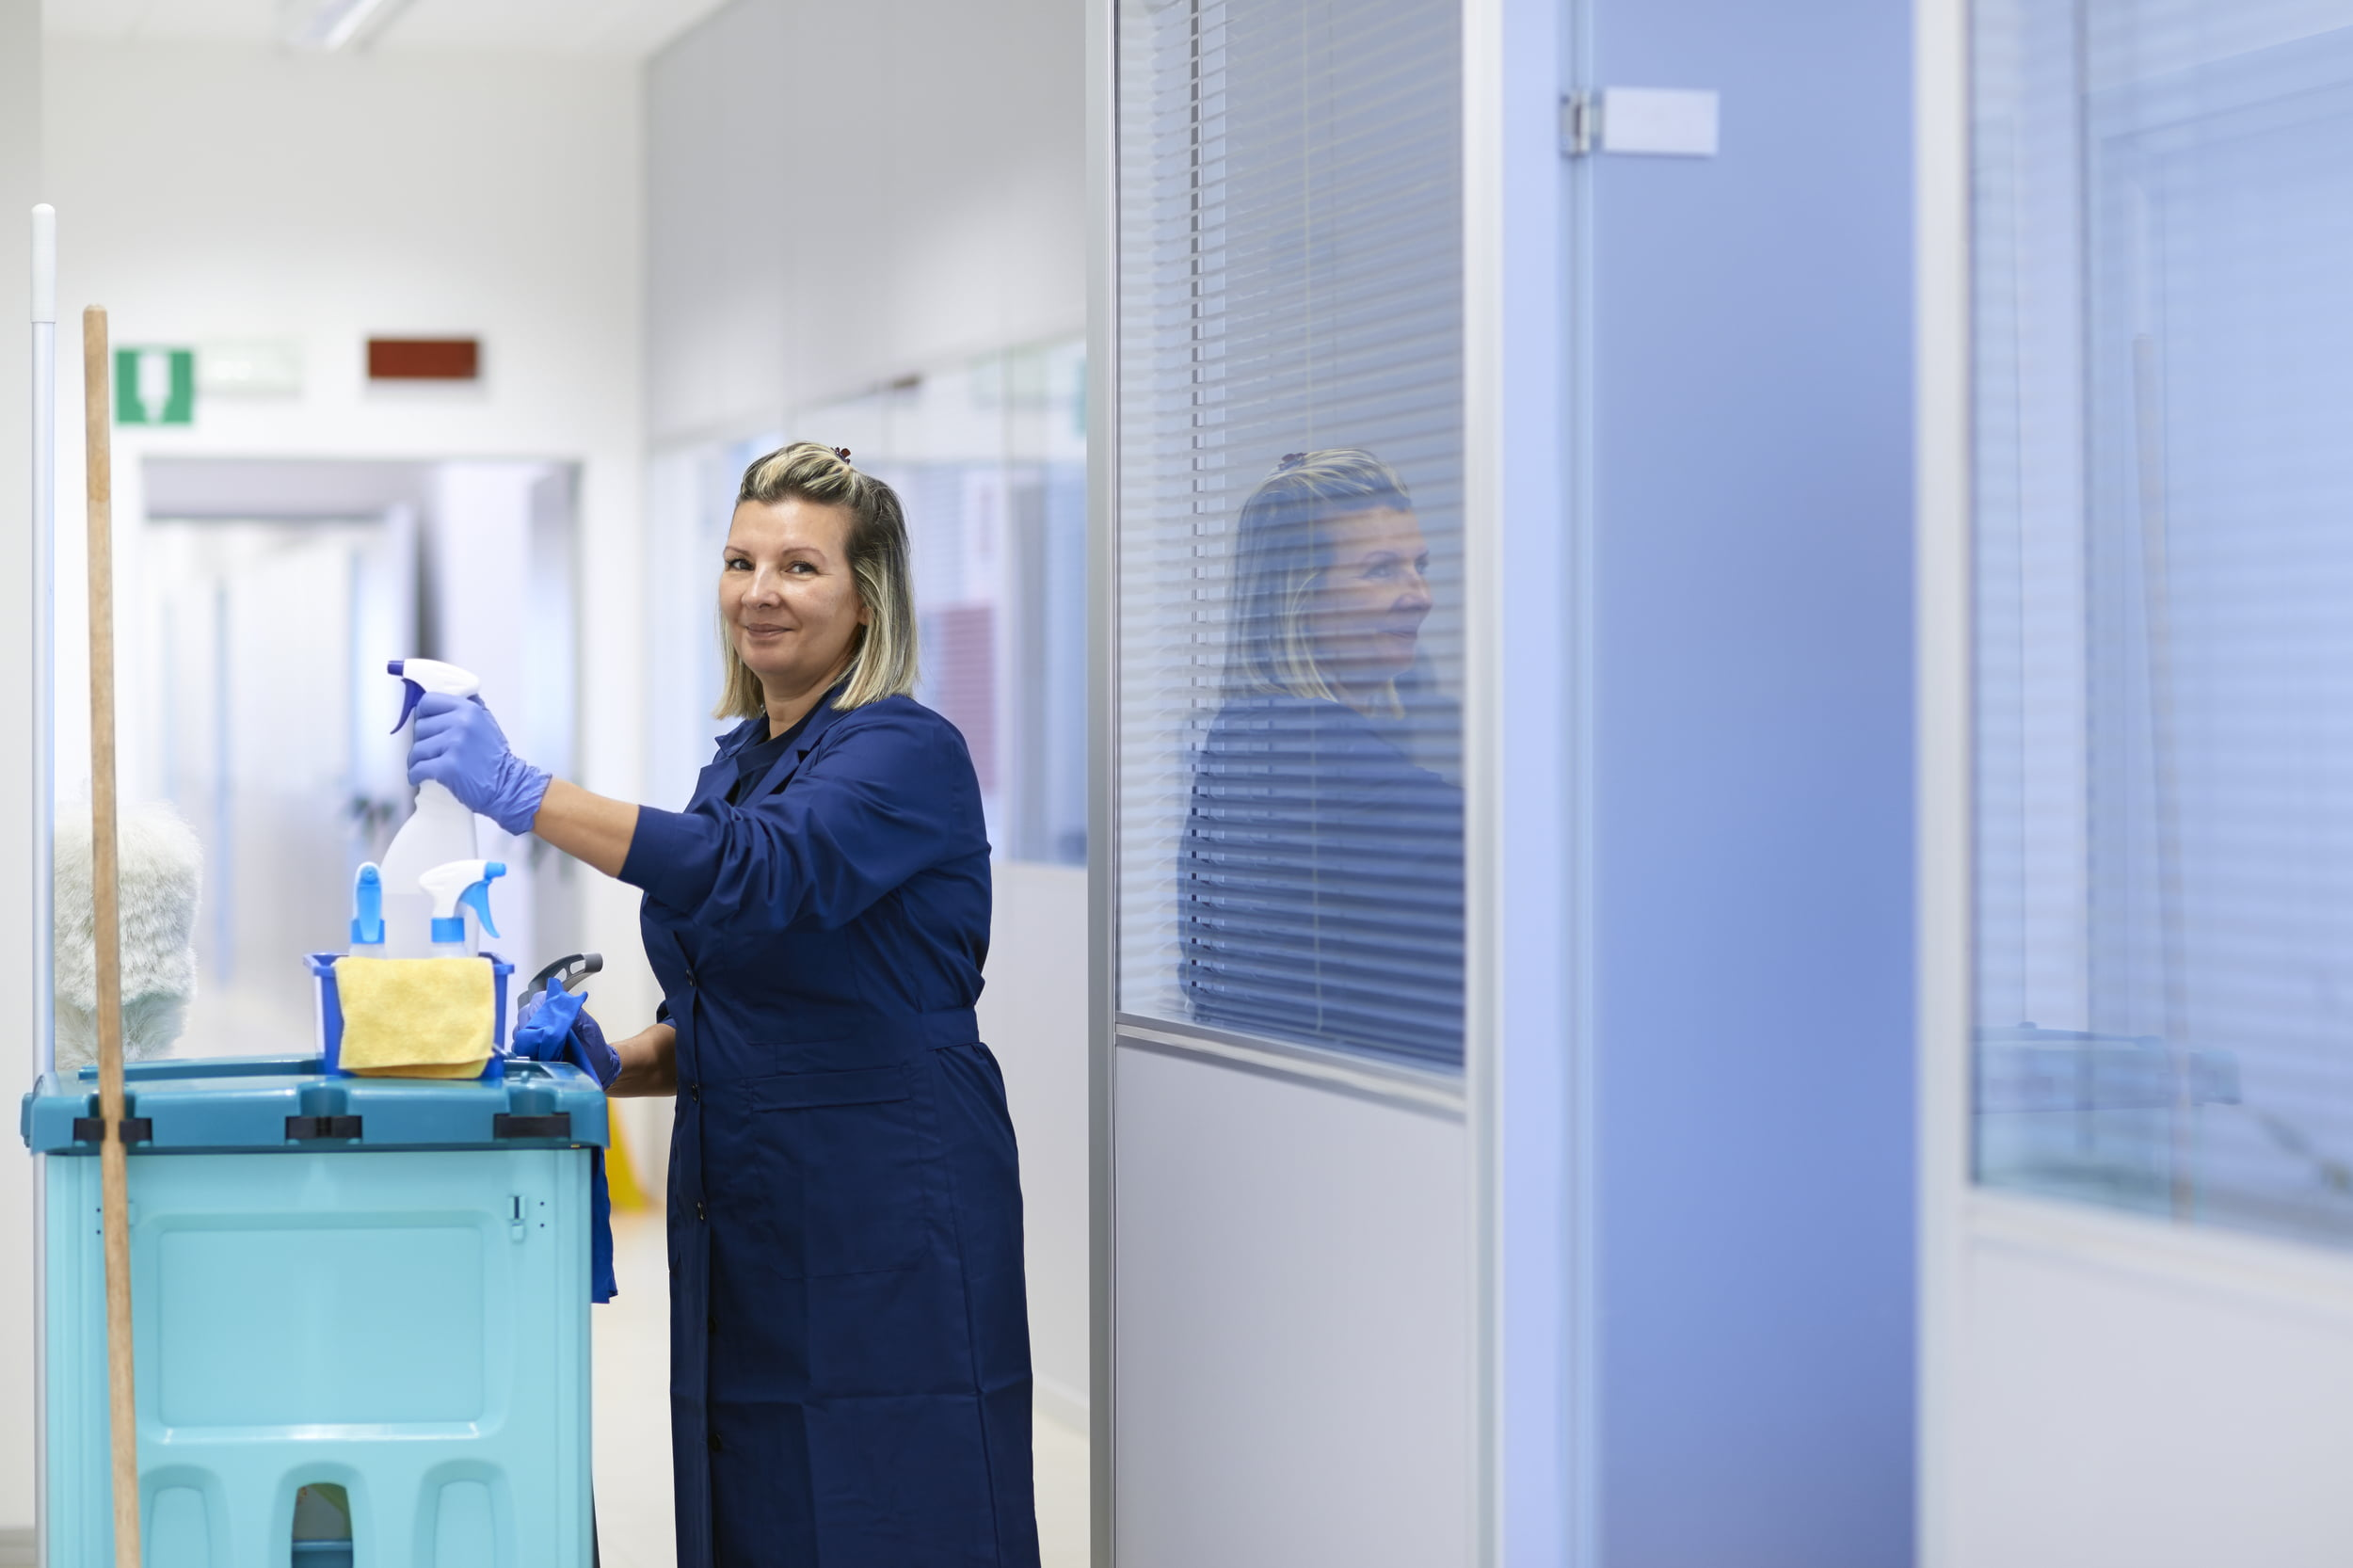 White woman in blue overalls in office environment with cleaning trolley. Star Clean Ltd, Cleaning, Cleaners, Commercial Cleaners, Domestic Cleaners. Bath, Bristol